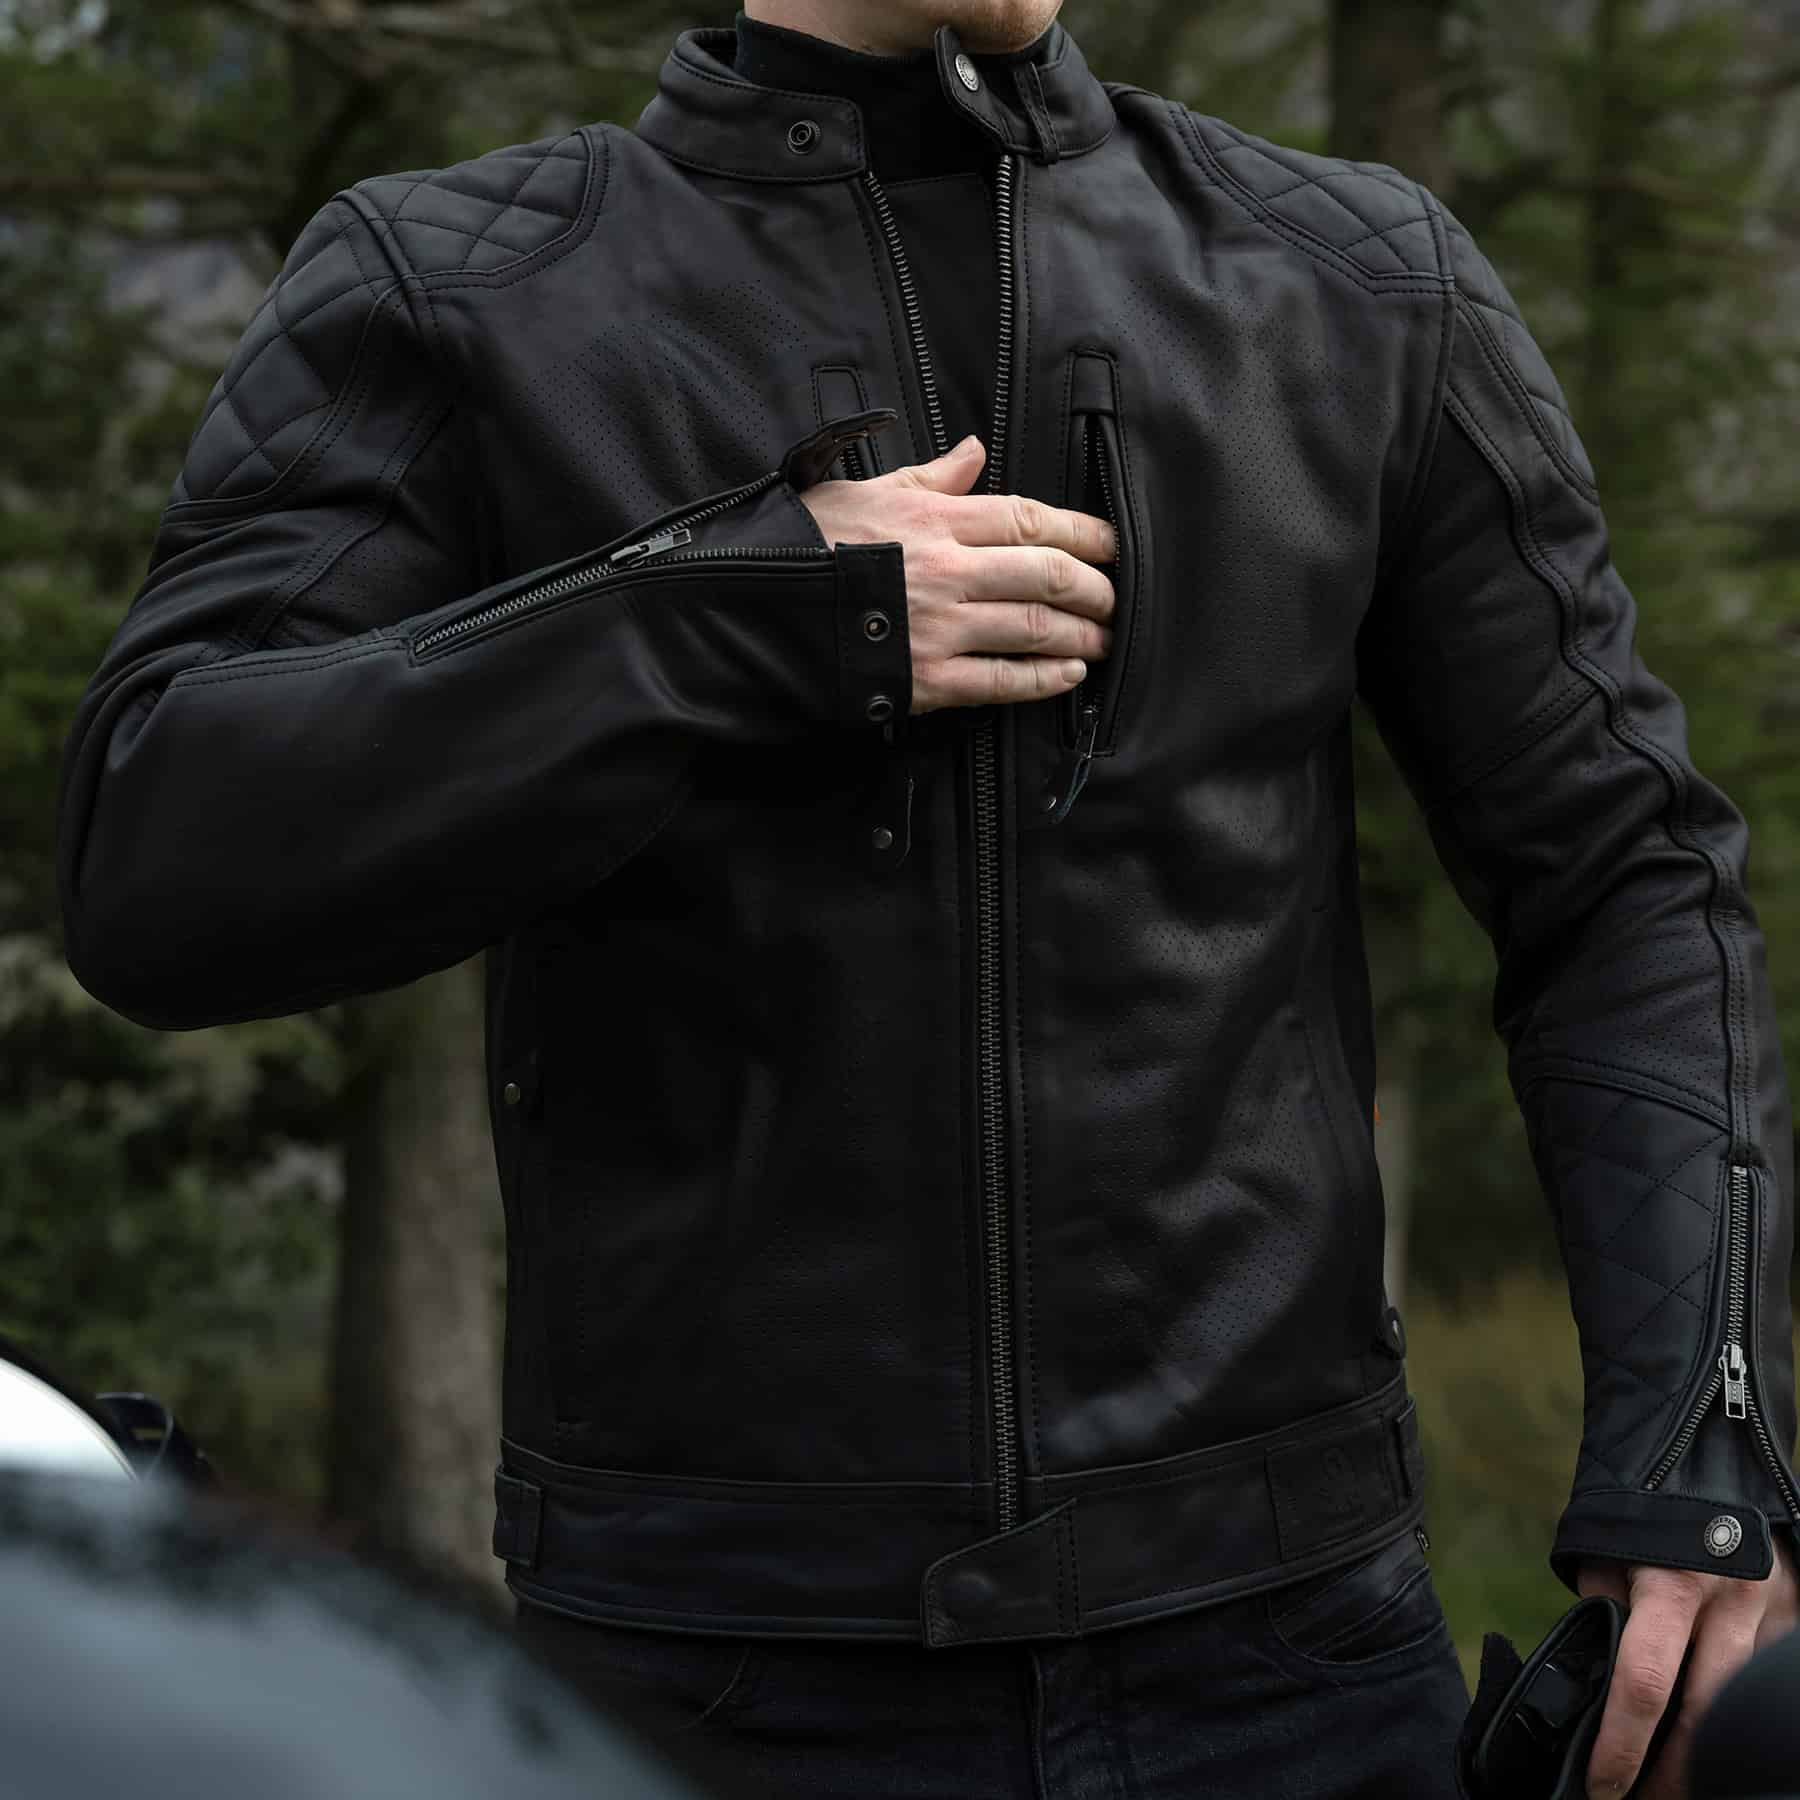 Merlin Cambrian leather jacket in black detail